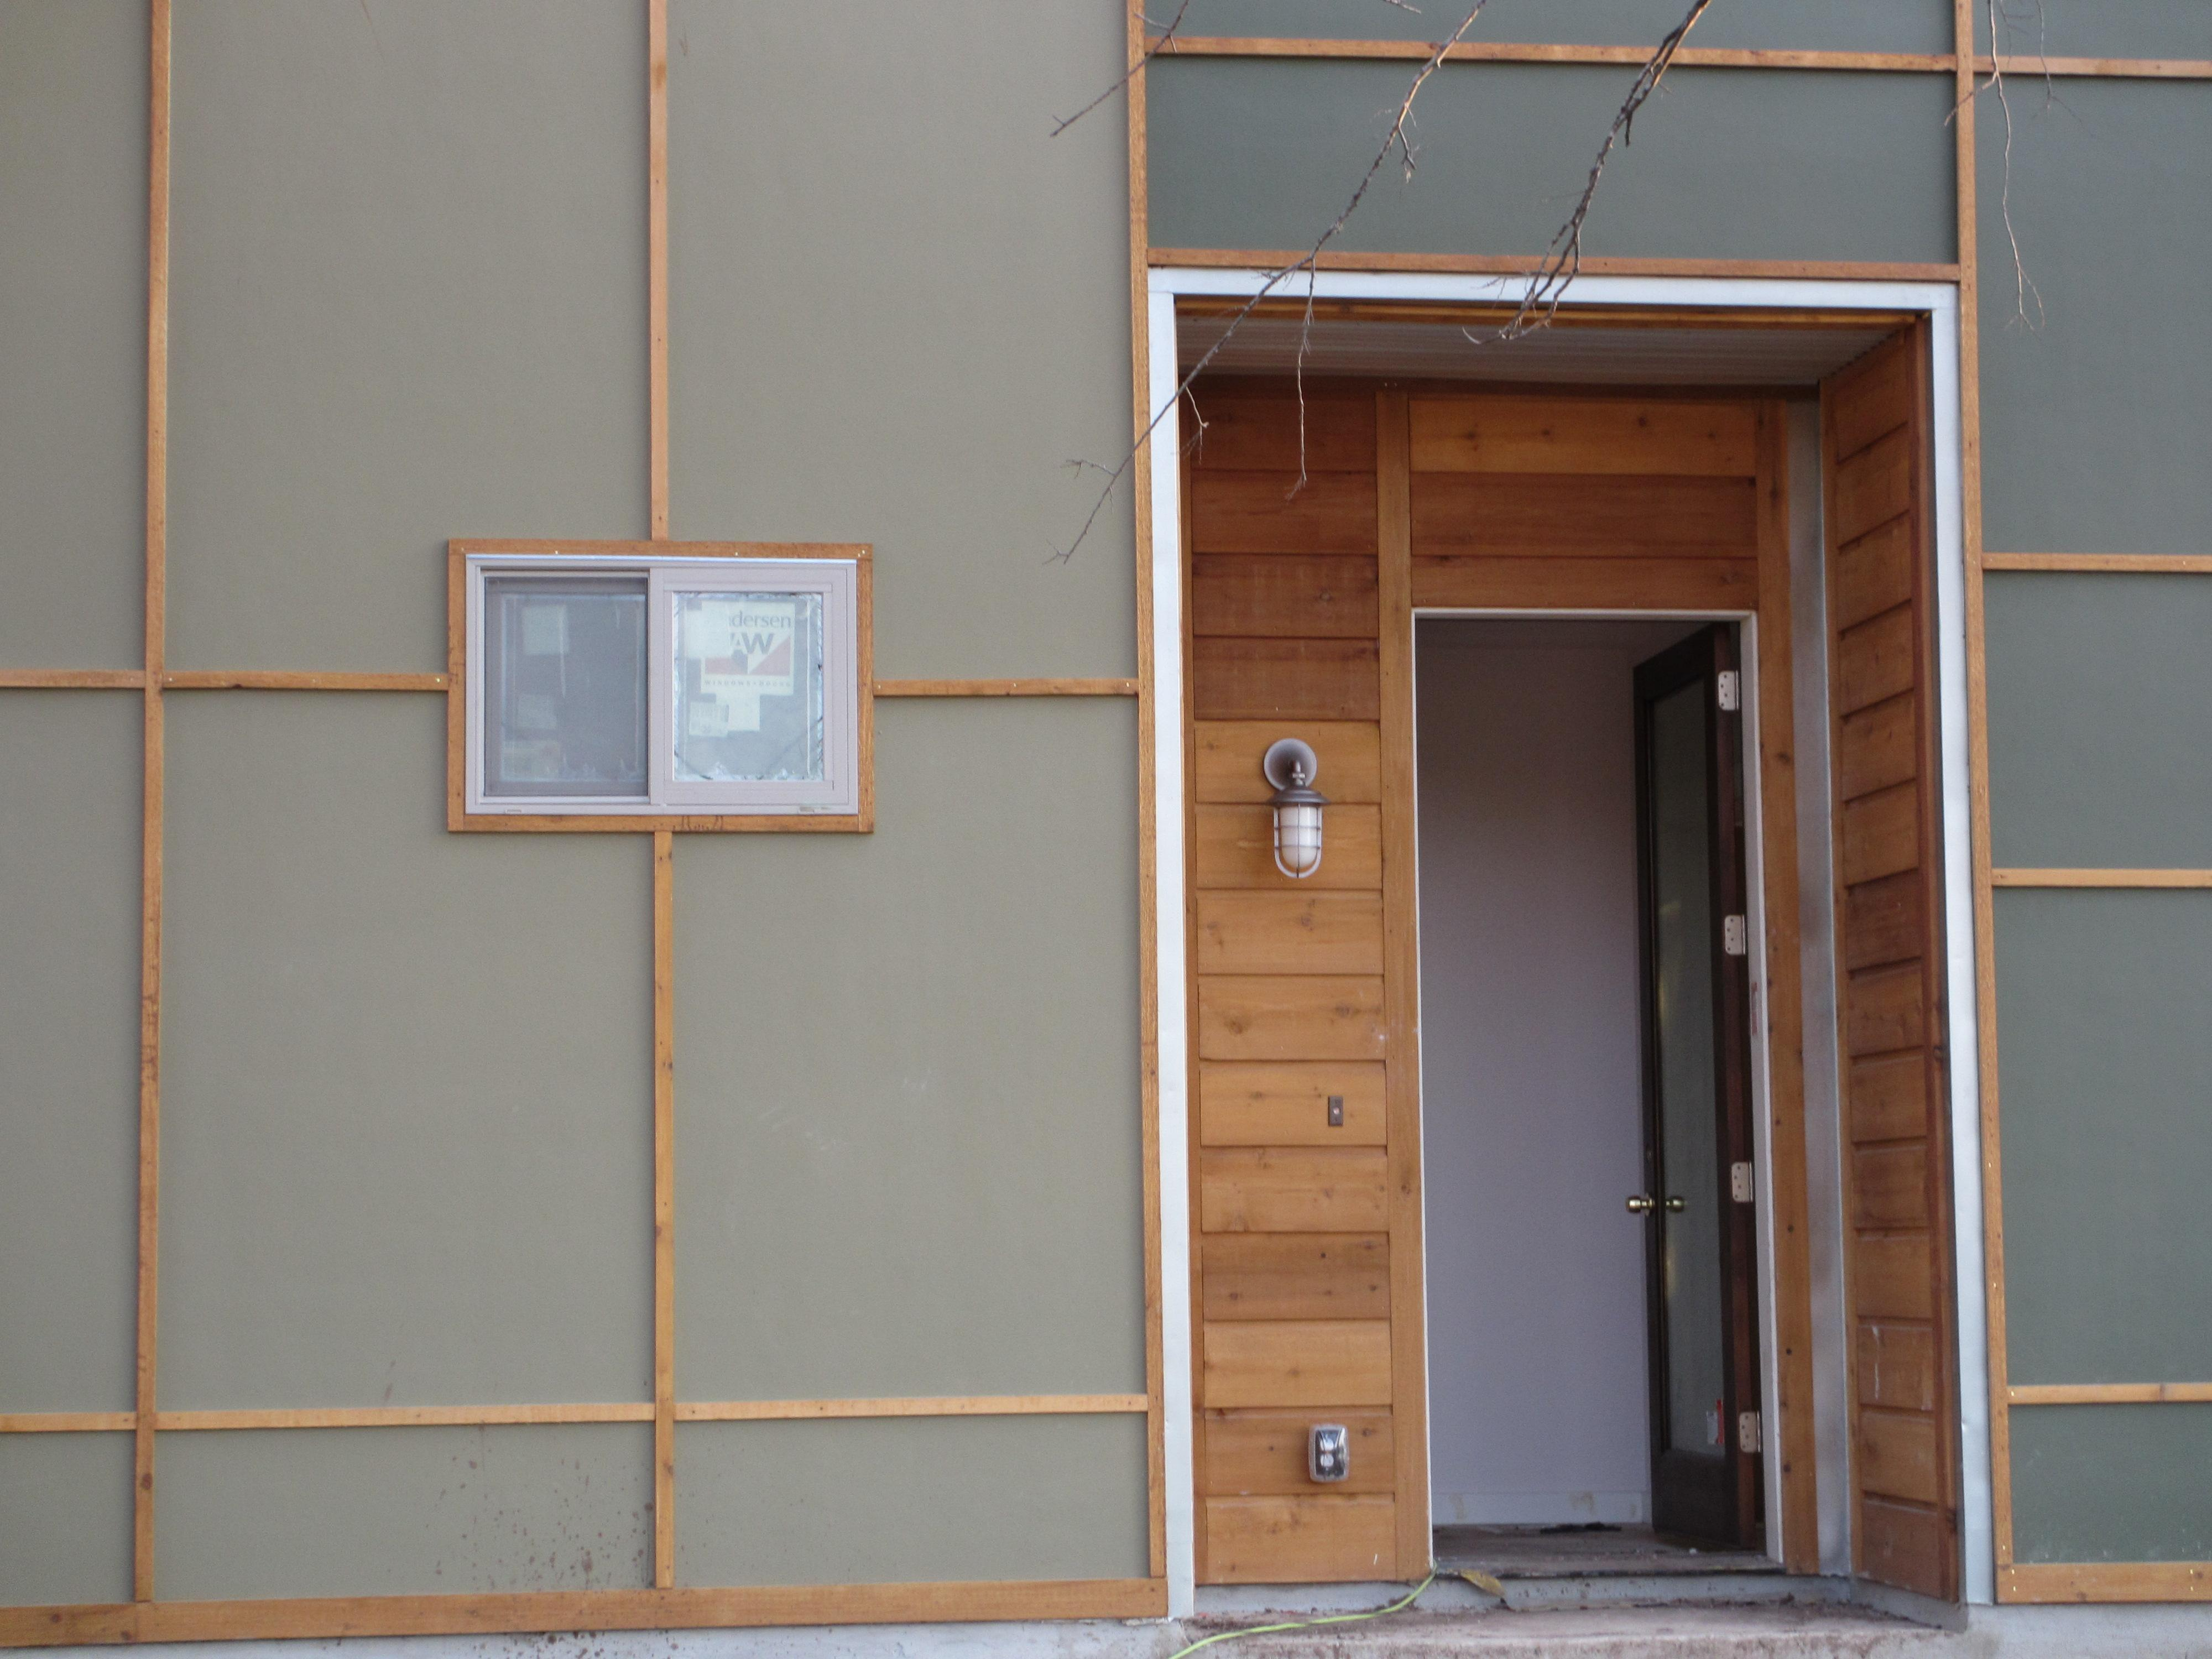 Austin Modern Uplift Home Builders and Contractors